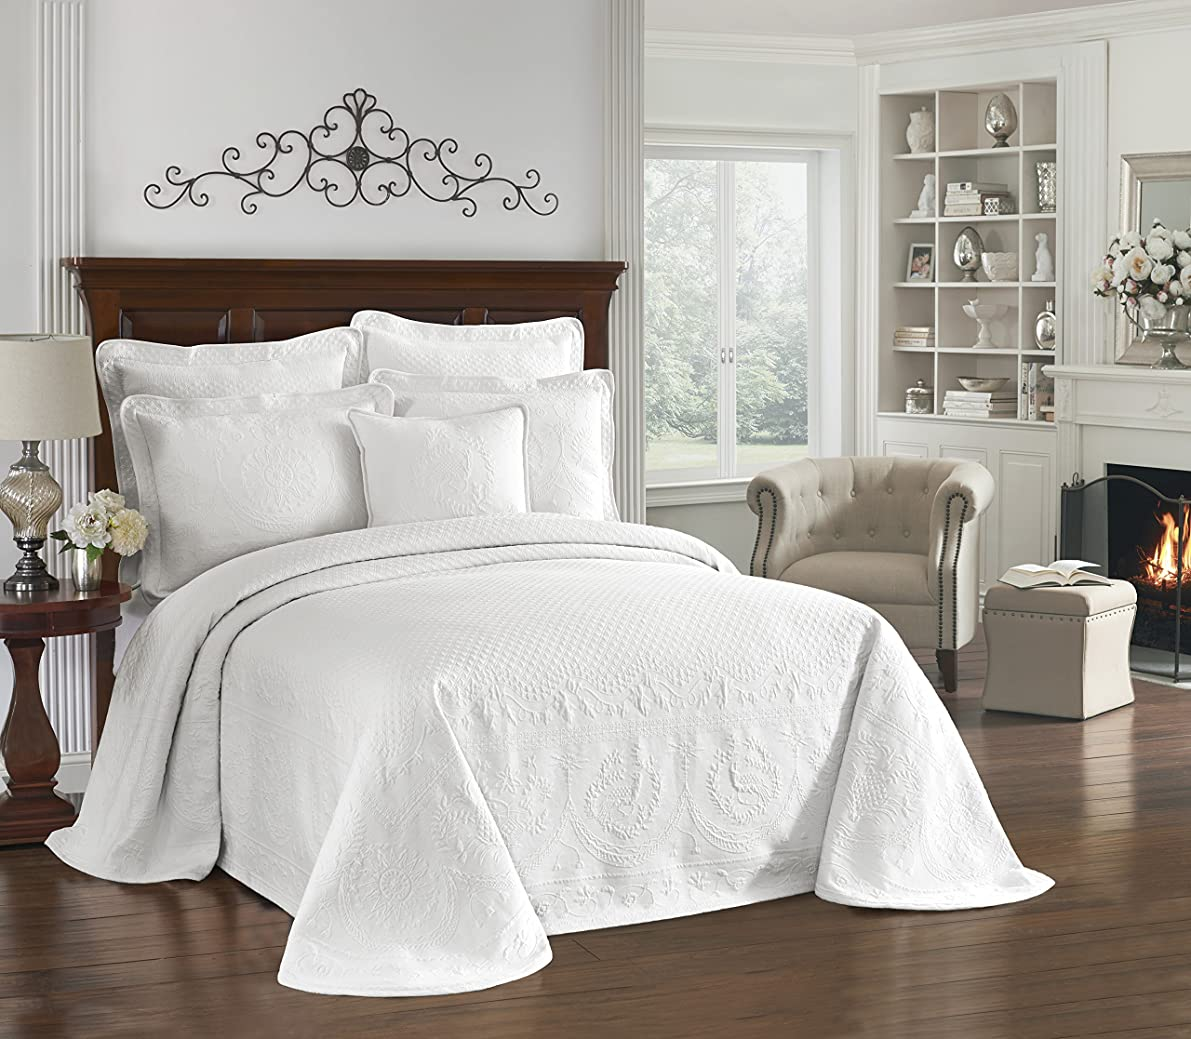 HISTORIC CHARLESTON Bedspreads Coverlet - King Charles Collection 120